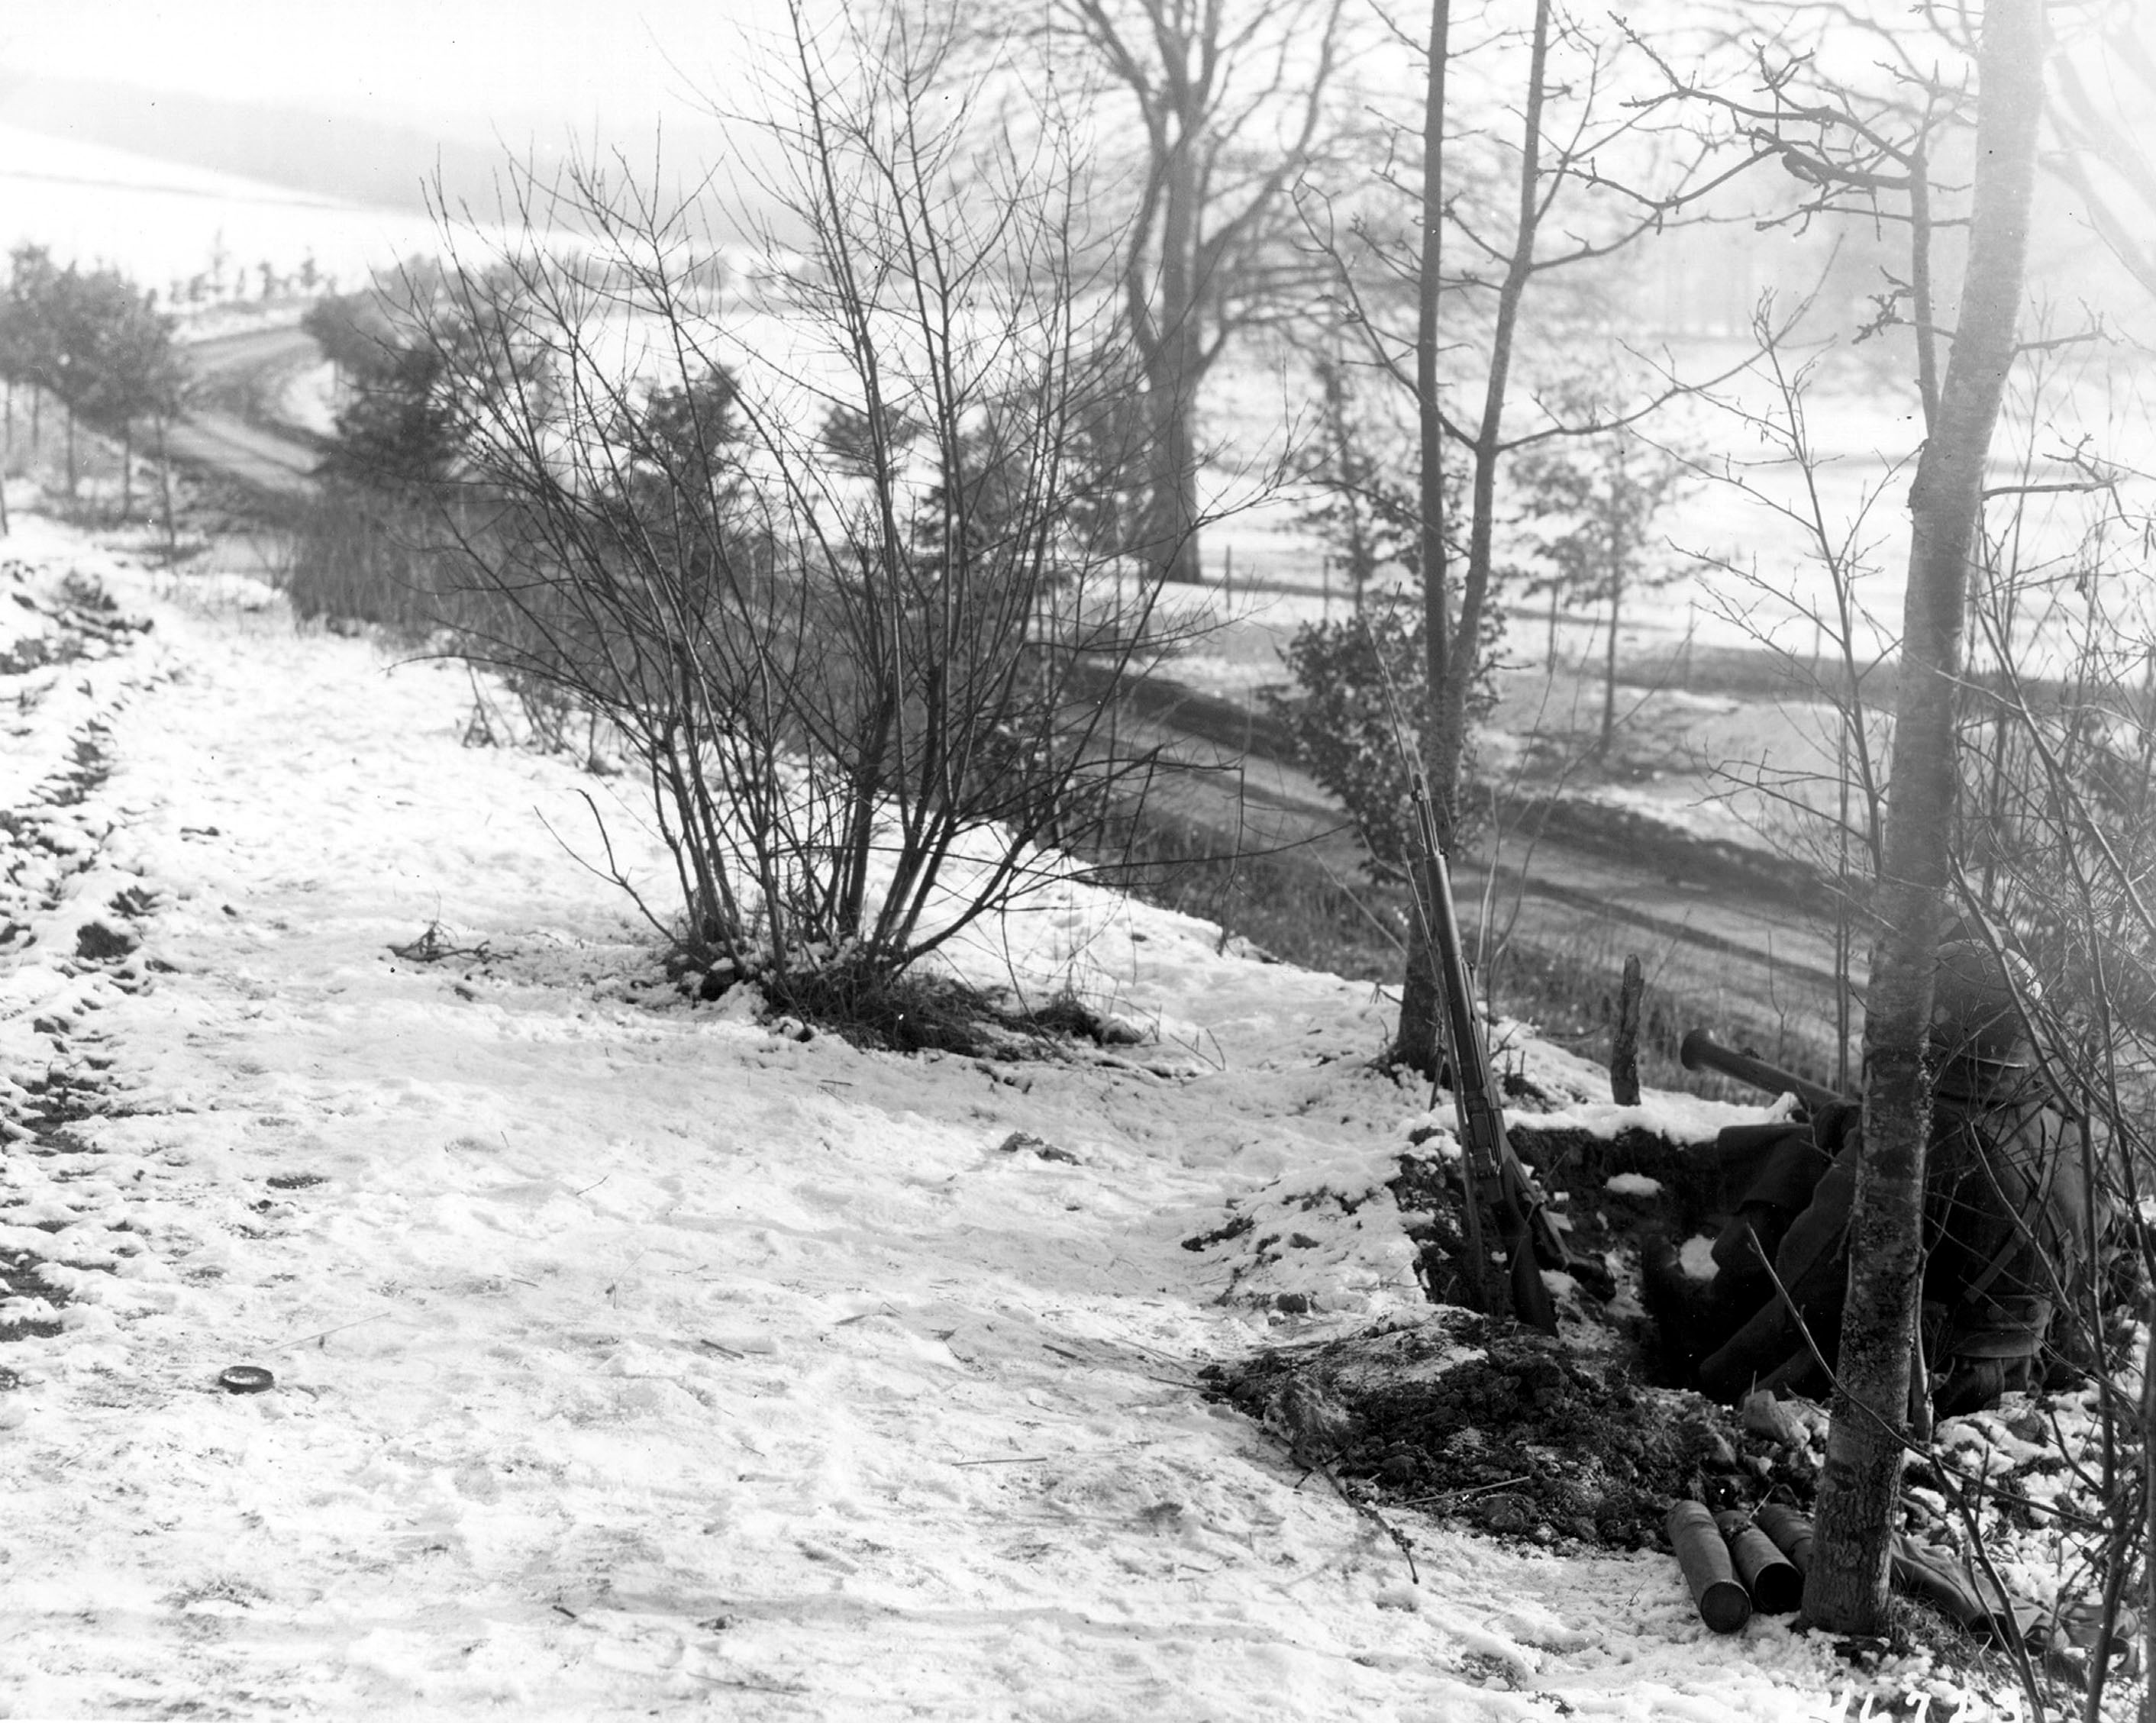 Two soldiers of US 101st Airborne Division with bazookas guard road leading to Bastogne, Belgium, 23 Dec 1944 (US Army Center of Military History)